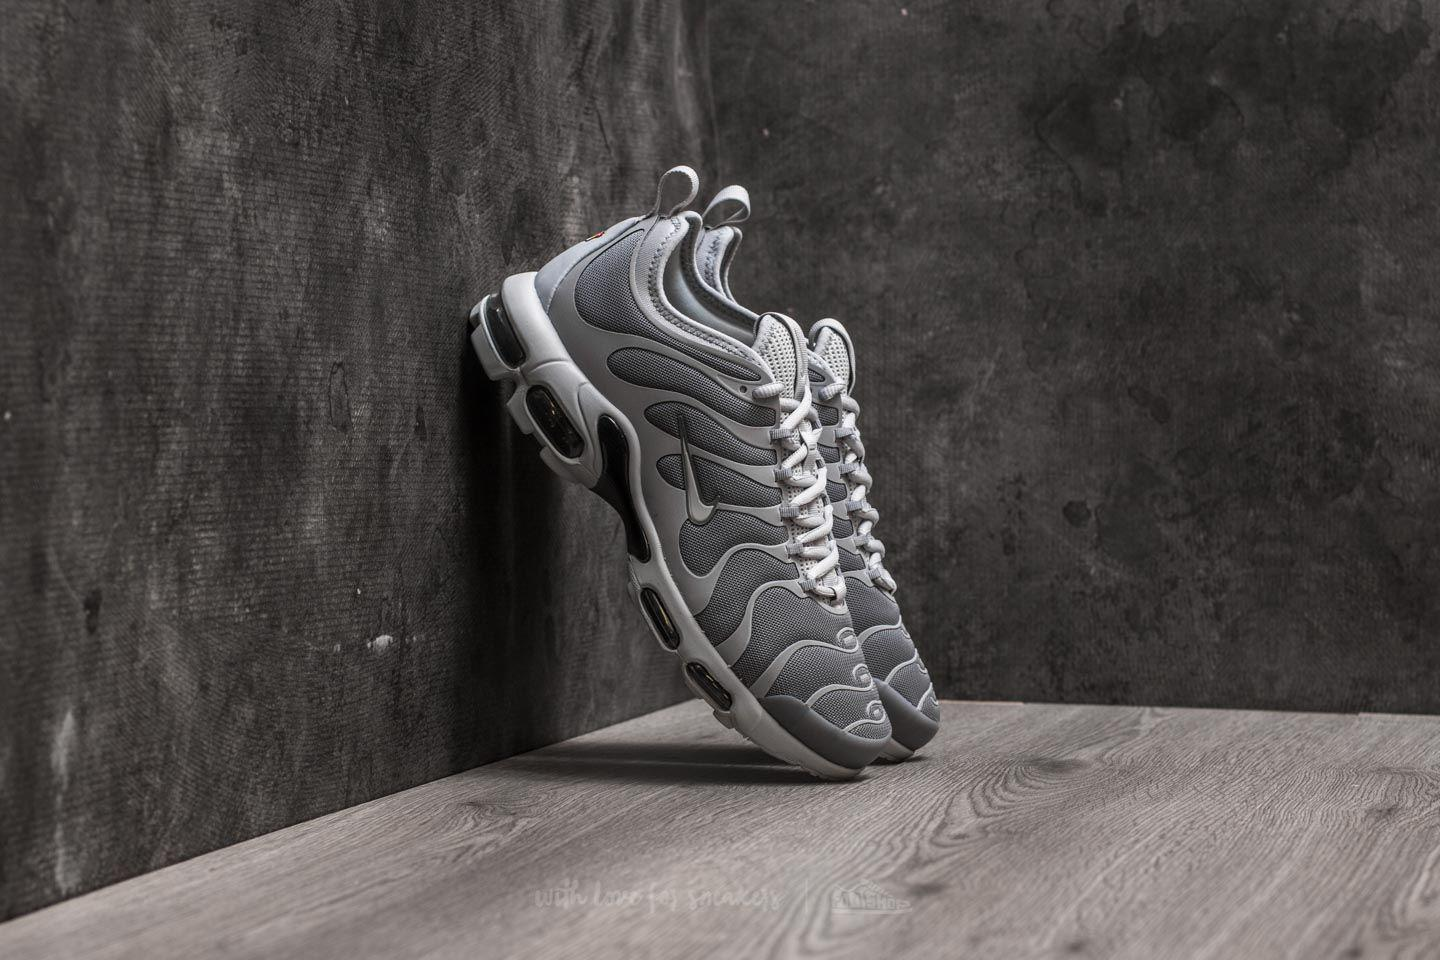 65eb7cc3e2 ... comes in another versatile colorway 61cbf 8244e; official lyst nike air  max plus tn ultra cool grey wolf grey black in gray d26b9